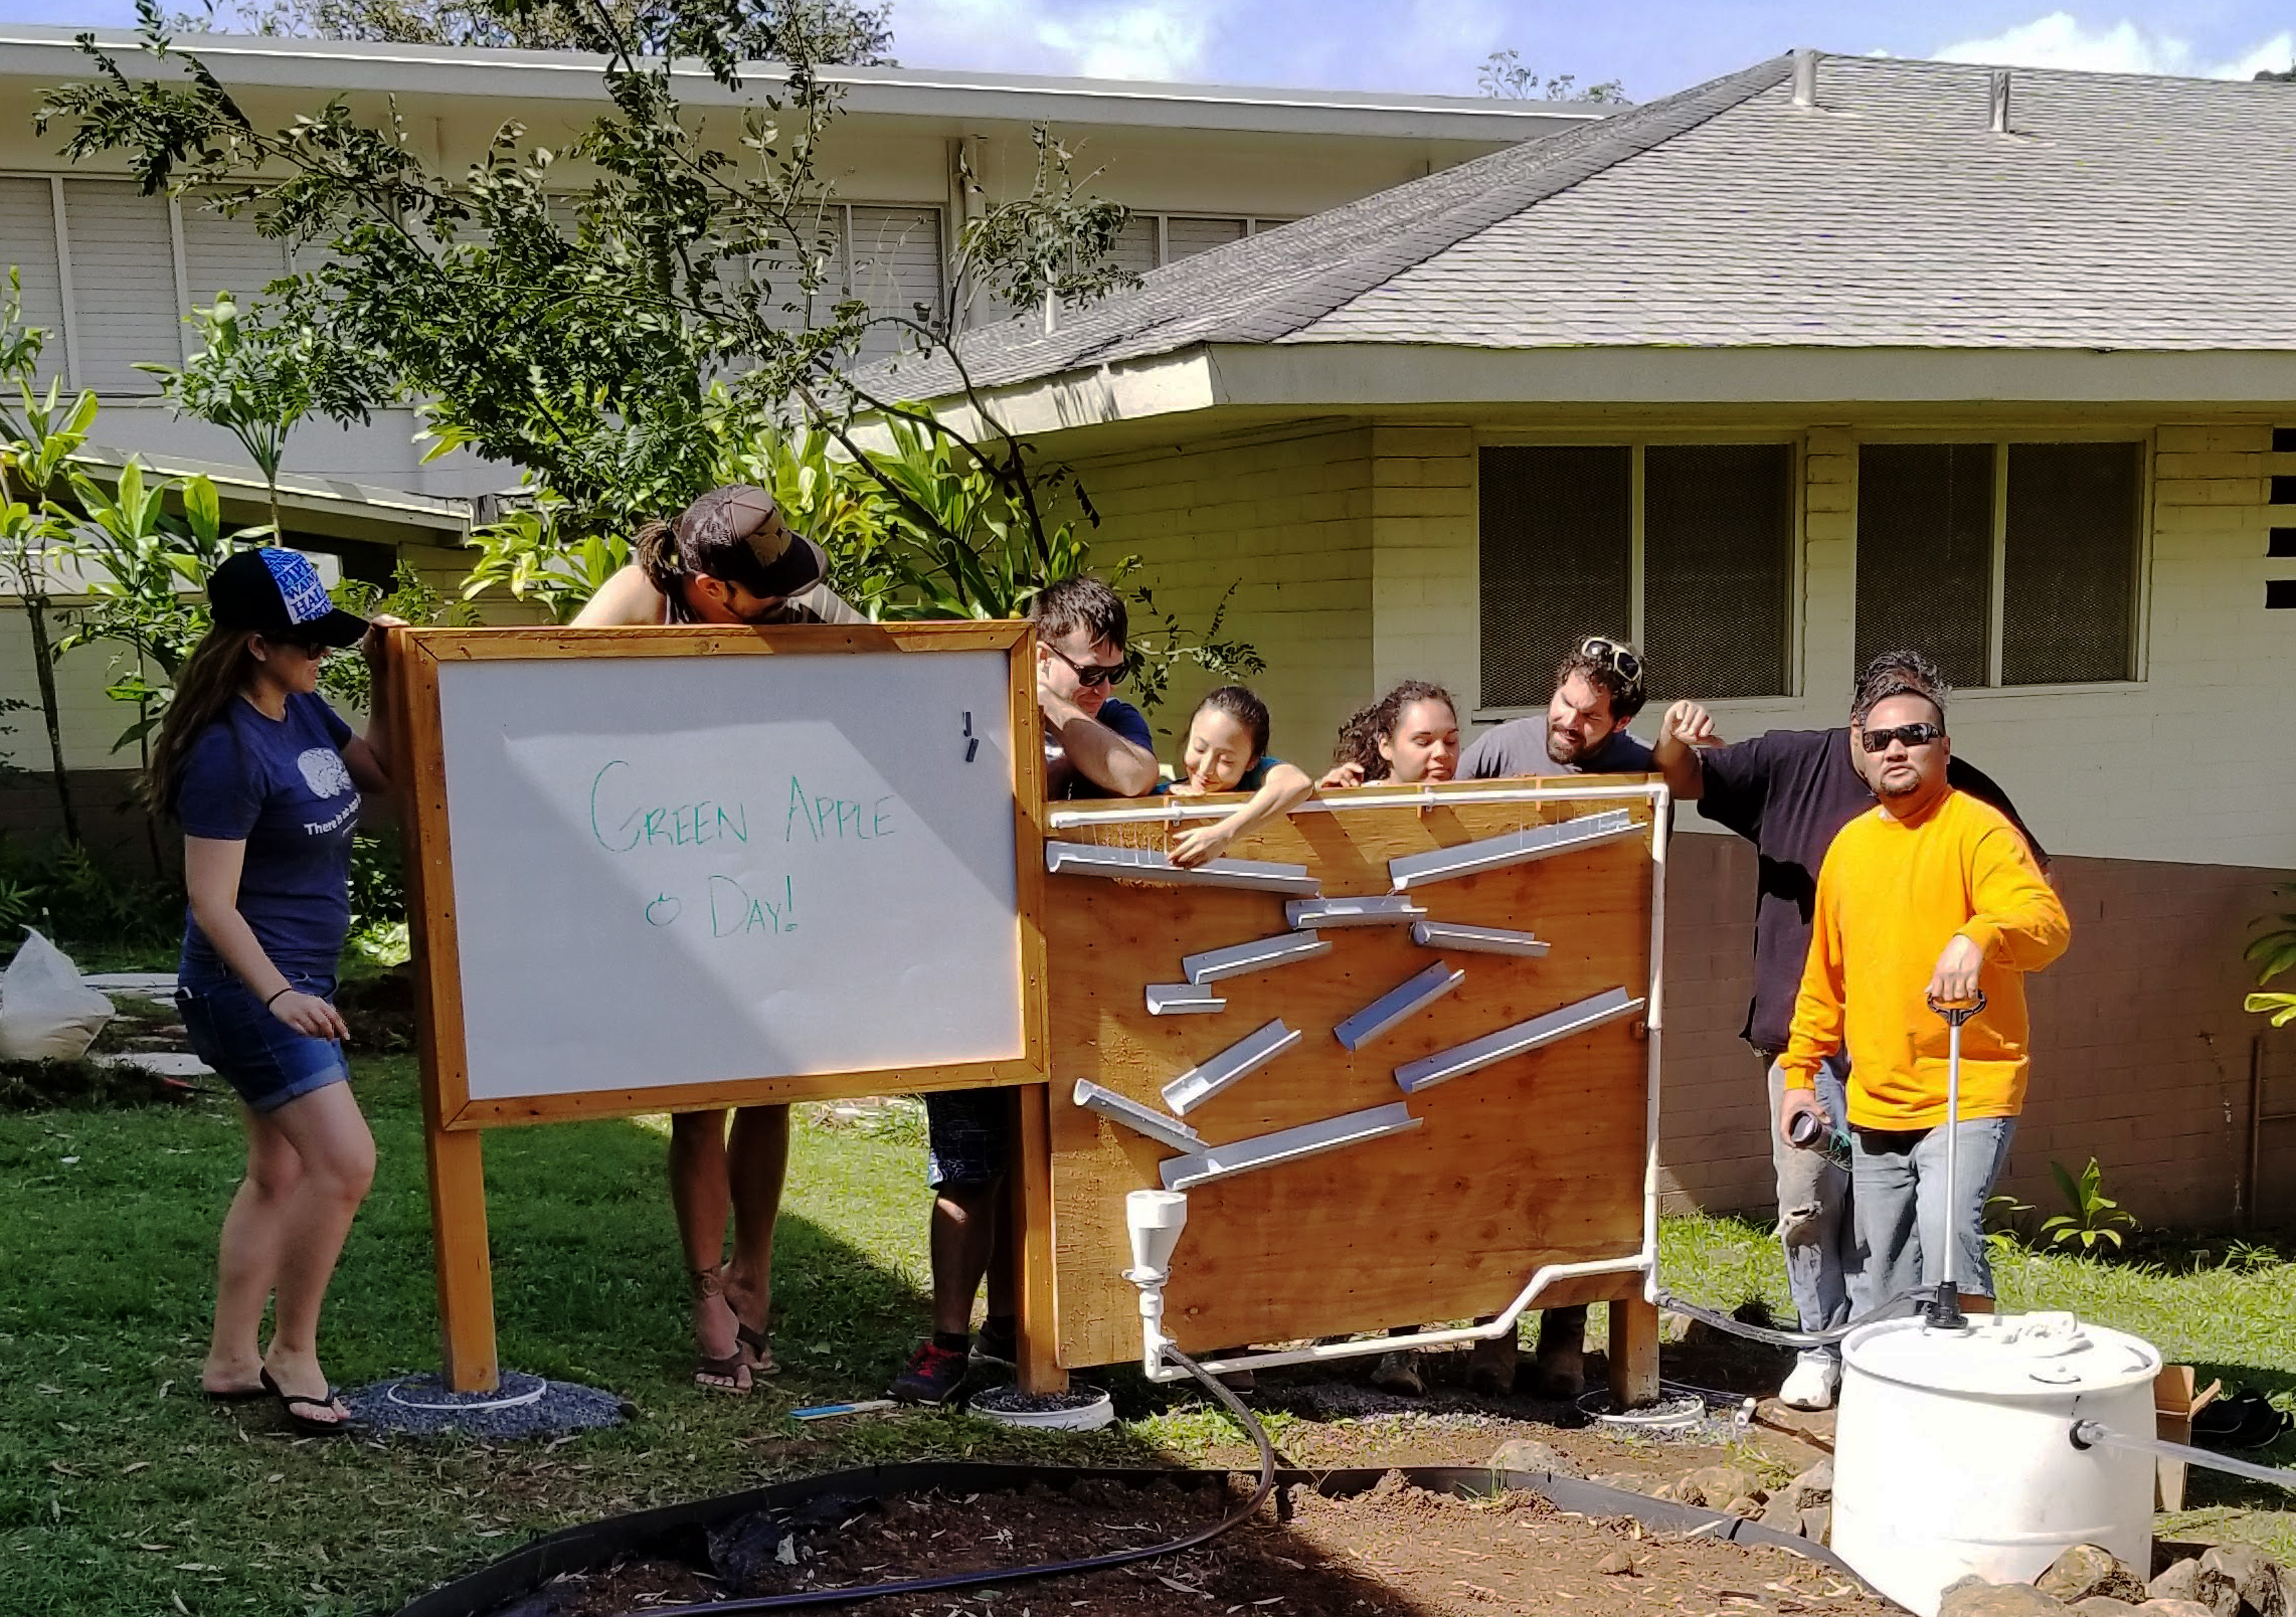 Pālolo Elementary School does a Green Apple Day of Service project